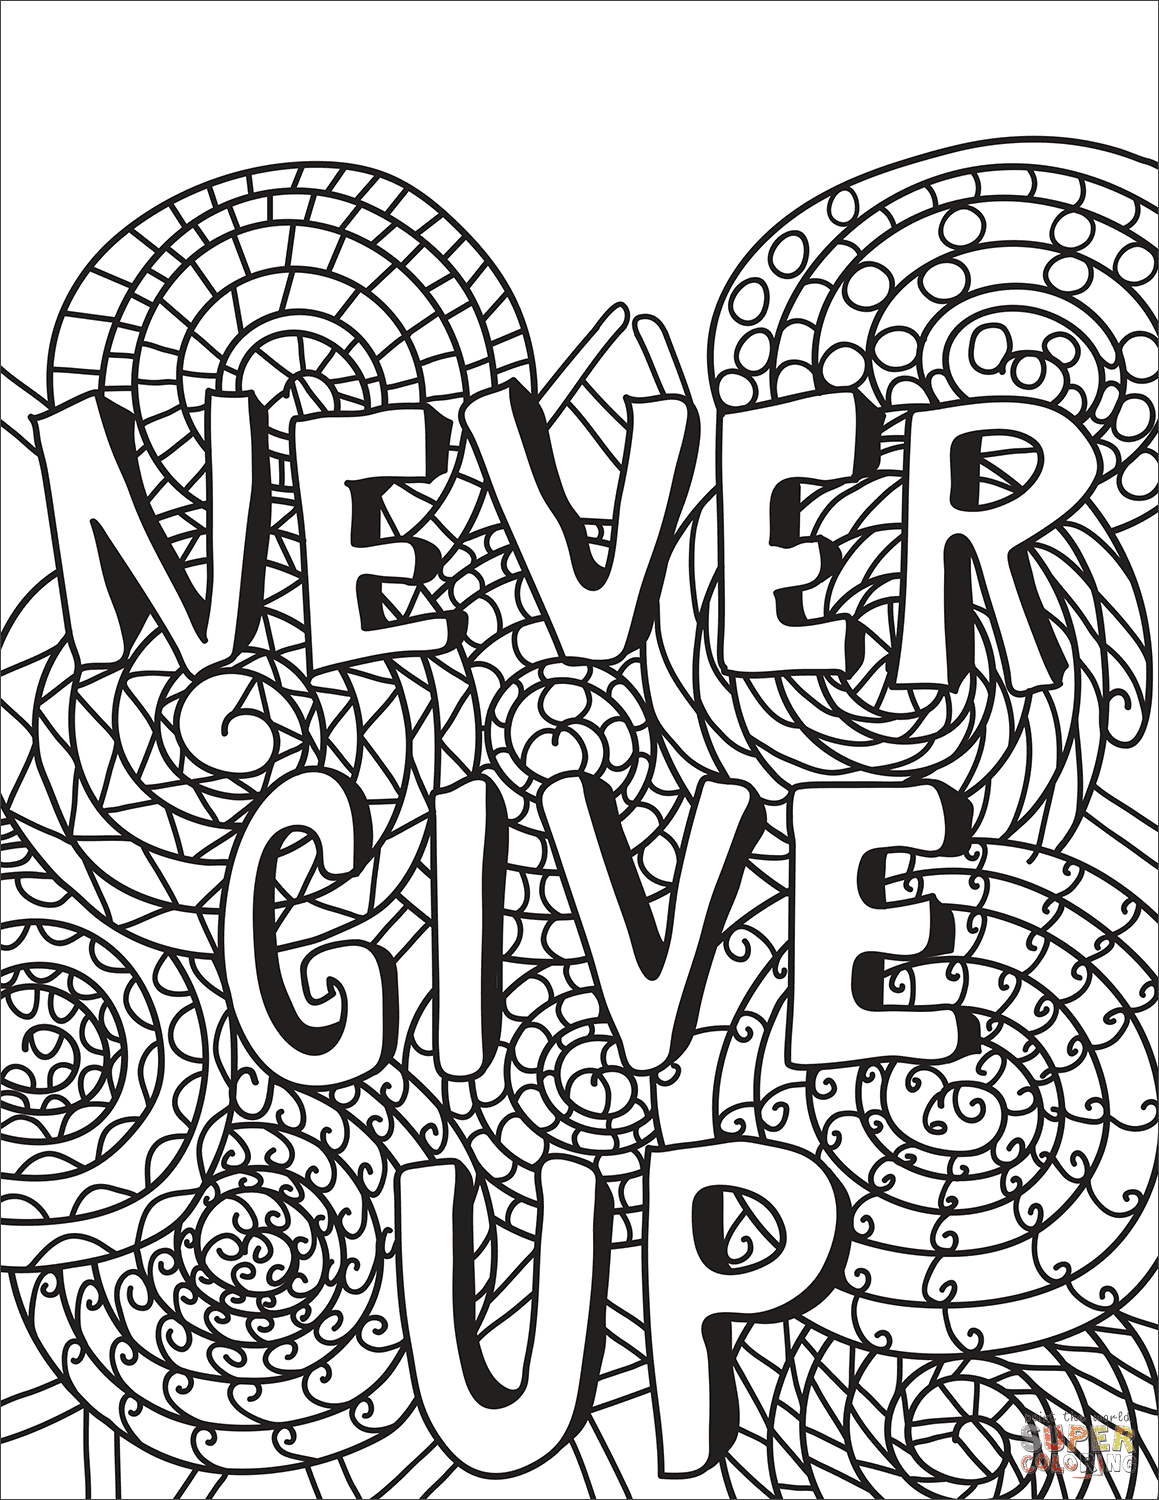 Never Give Up coloring page   Free Printable Coloring Pages